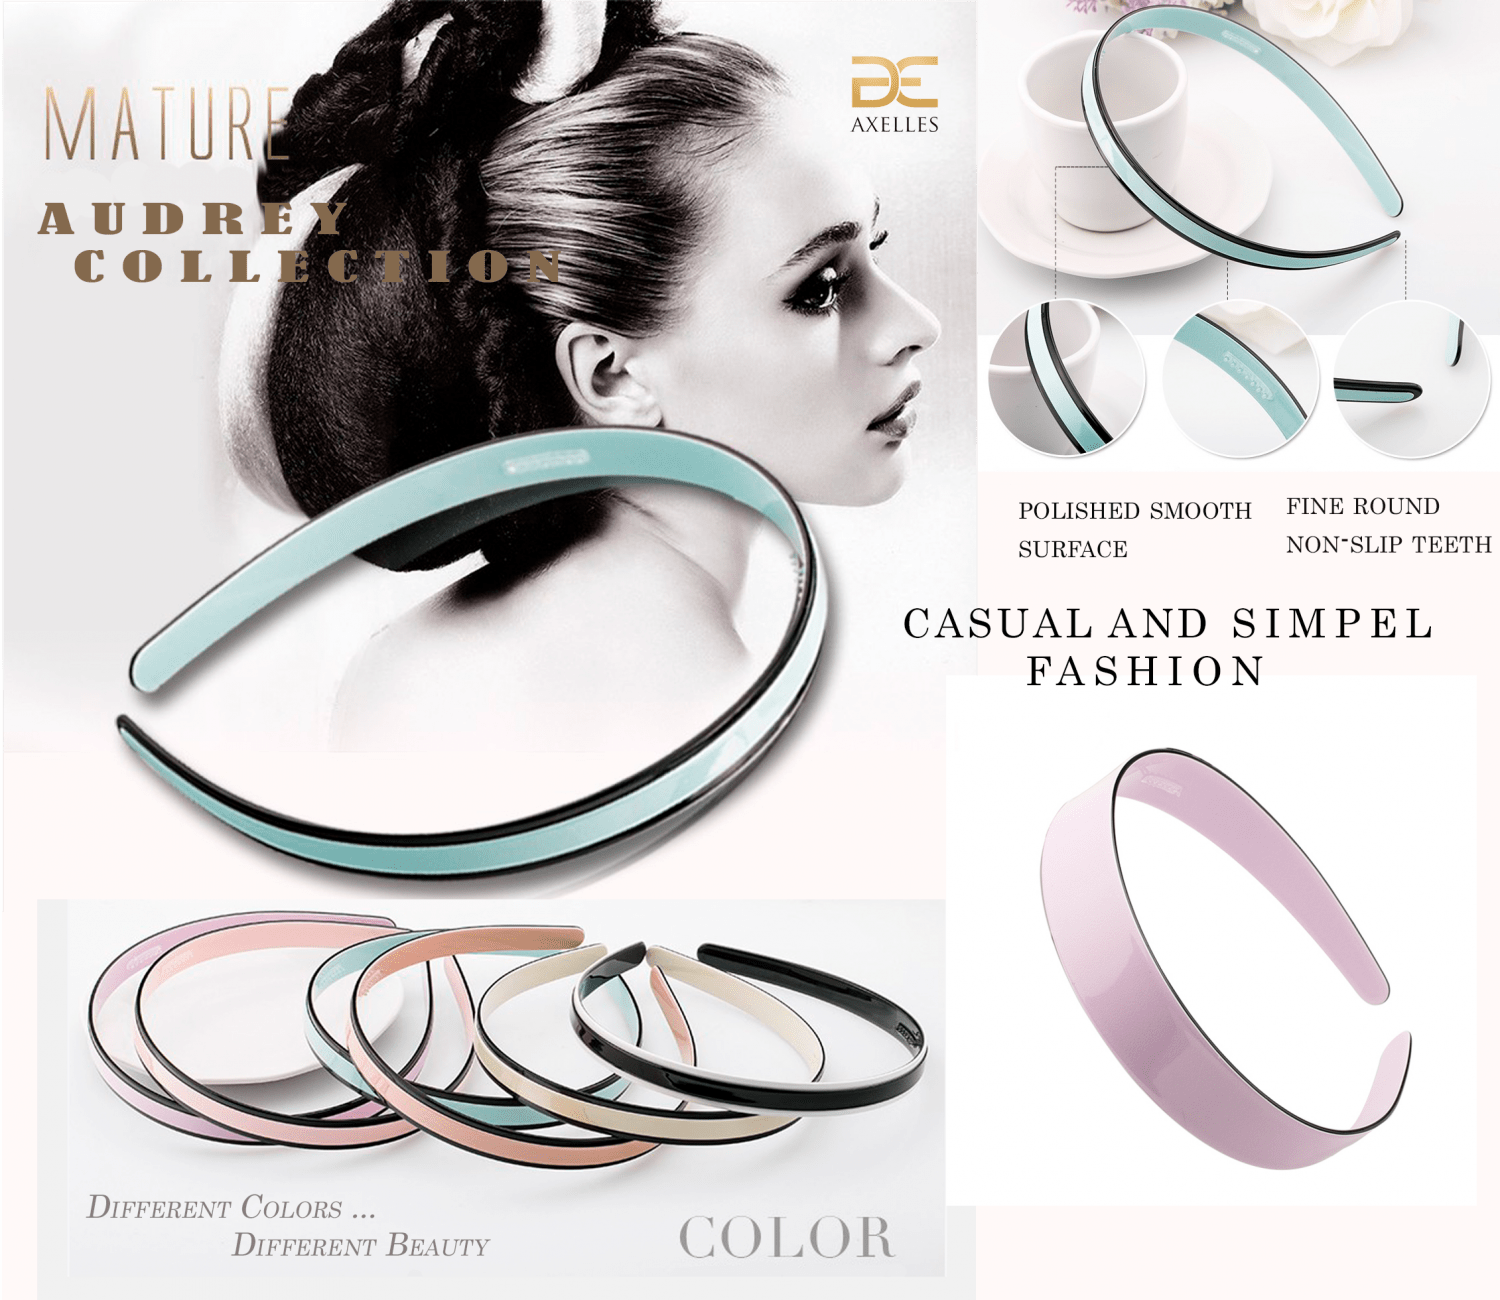 Charm Hairband / Headband Hairband luxury simple Audrey collection by Axelles